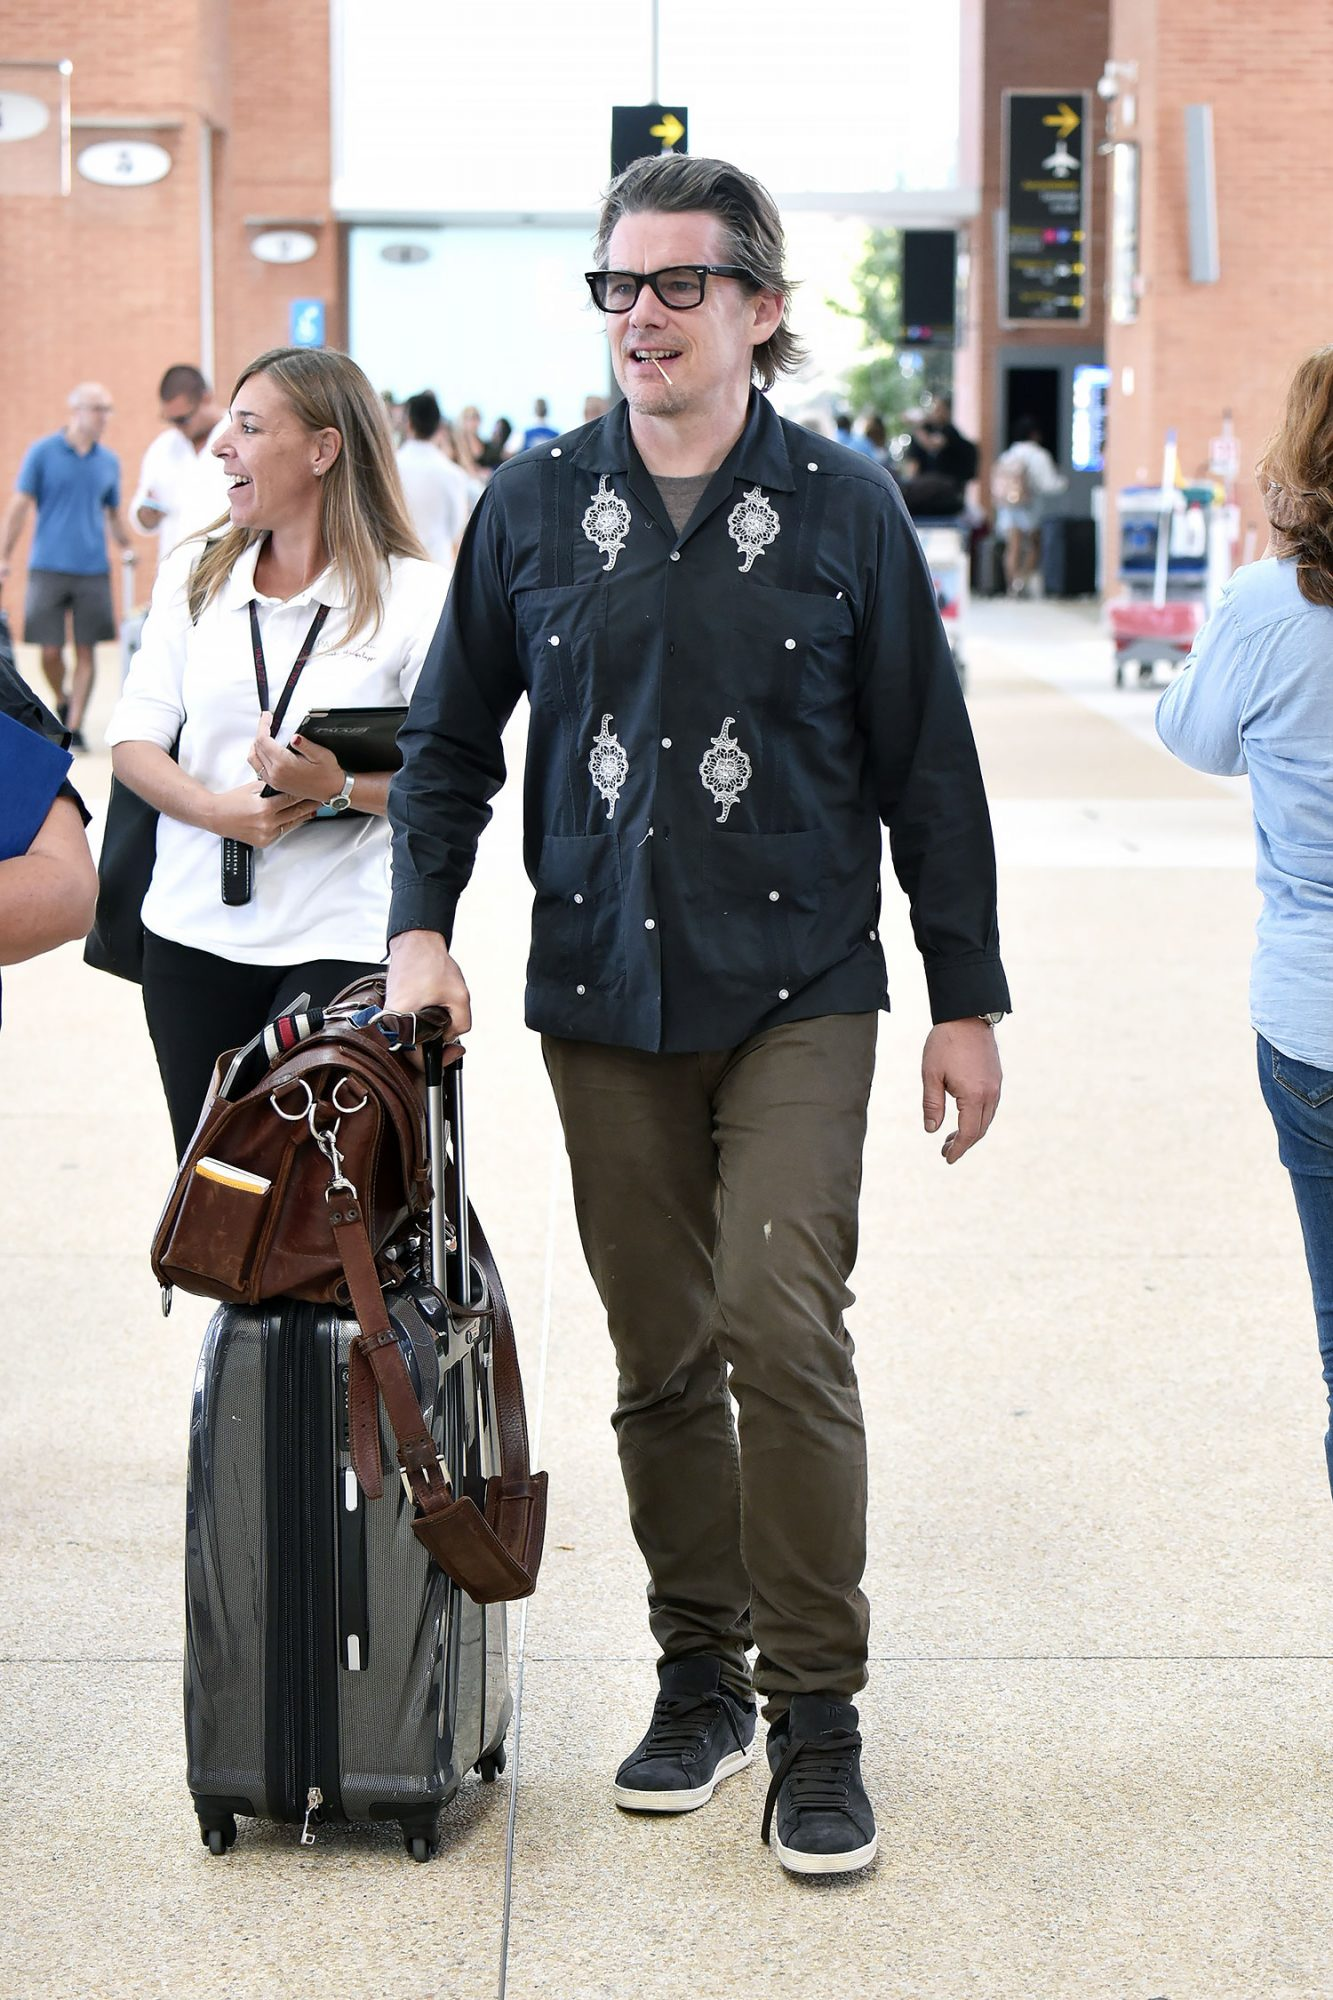 Airport Celebrity Sightings during The 74th Venice Film Festival - August 30, 2017